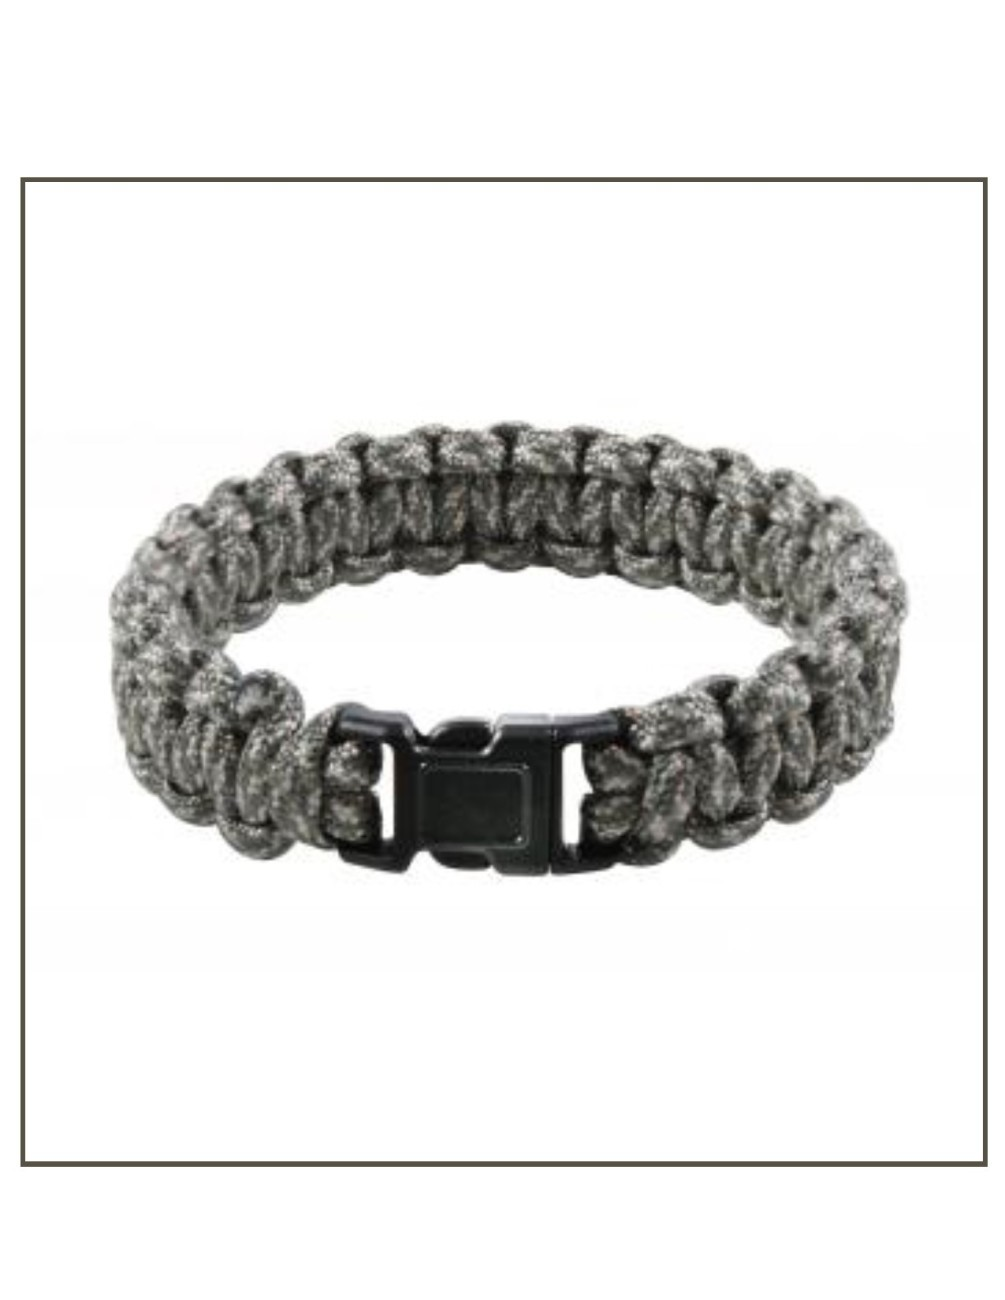 Woodland Camo Paracord Braclet